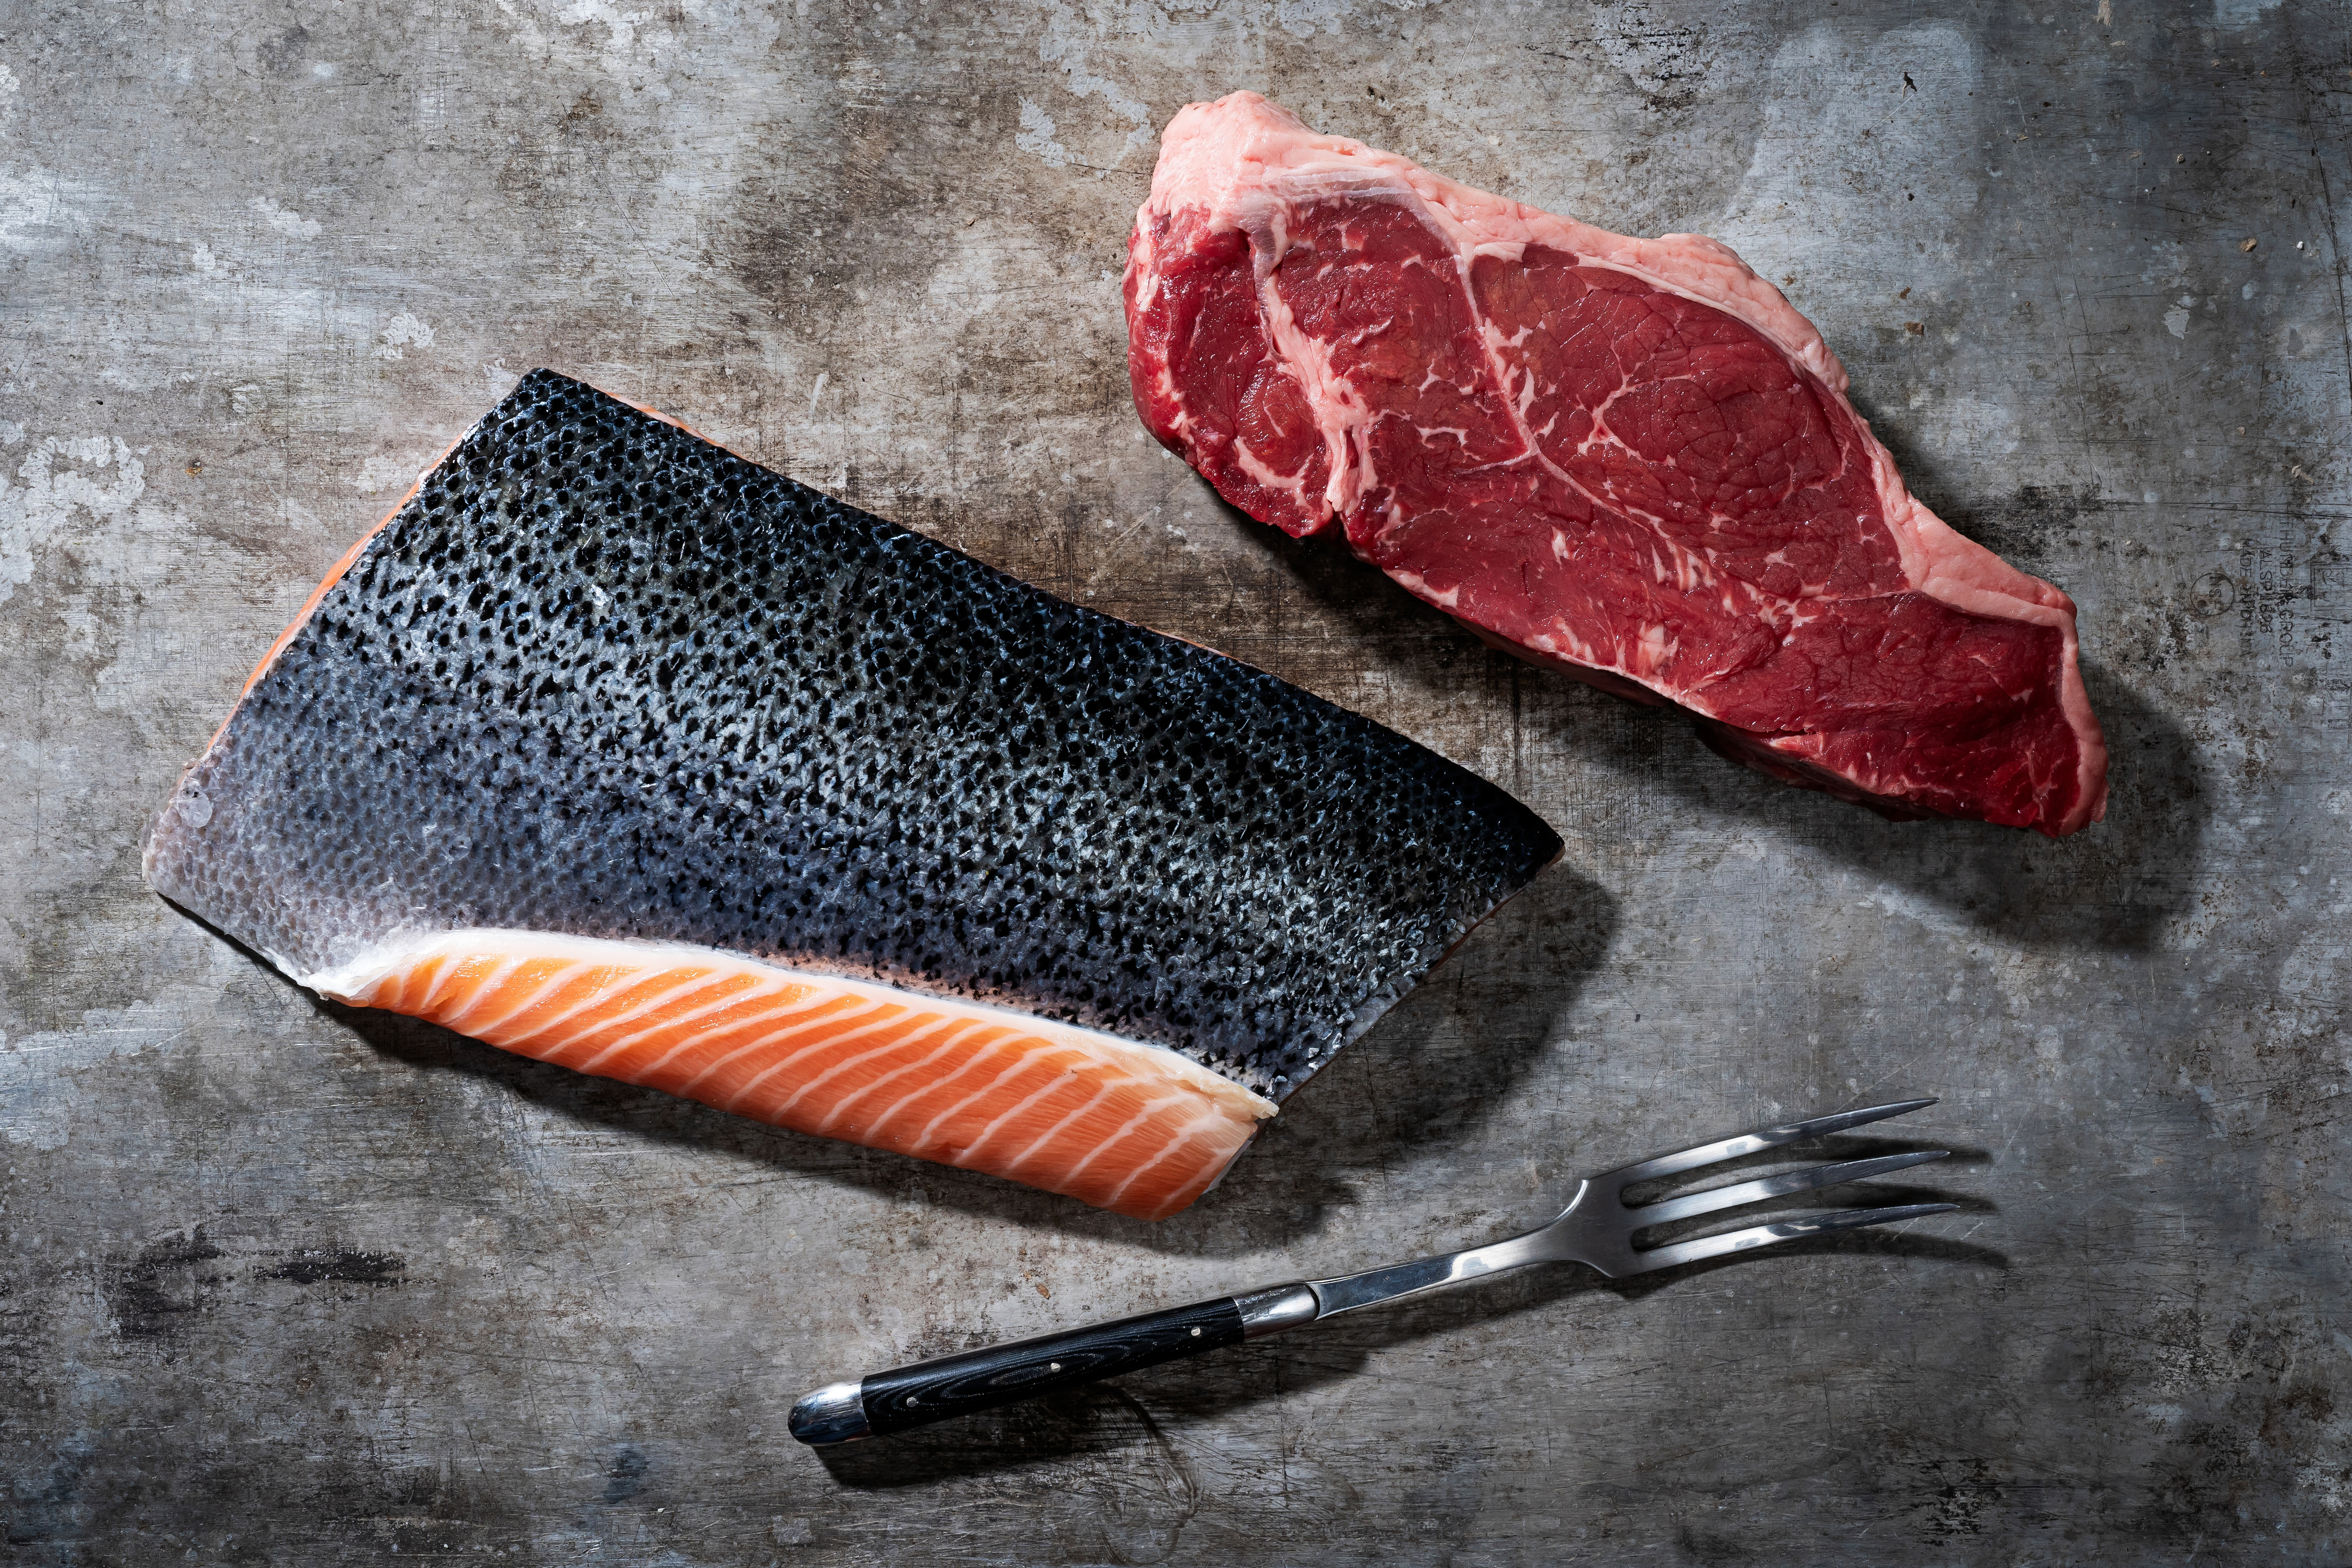 A piece of salmon and red meat.